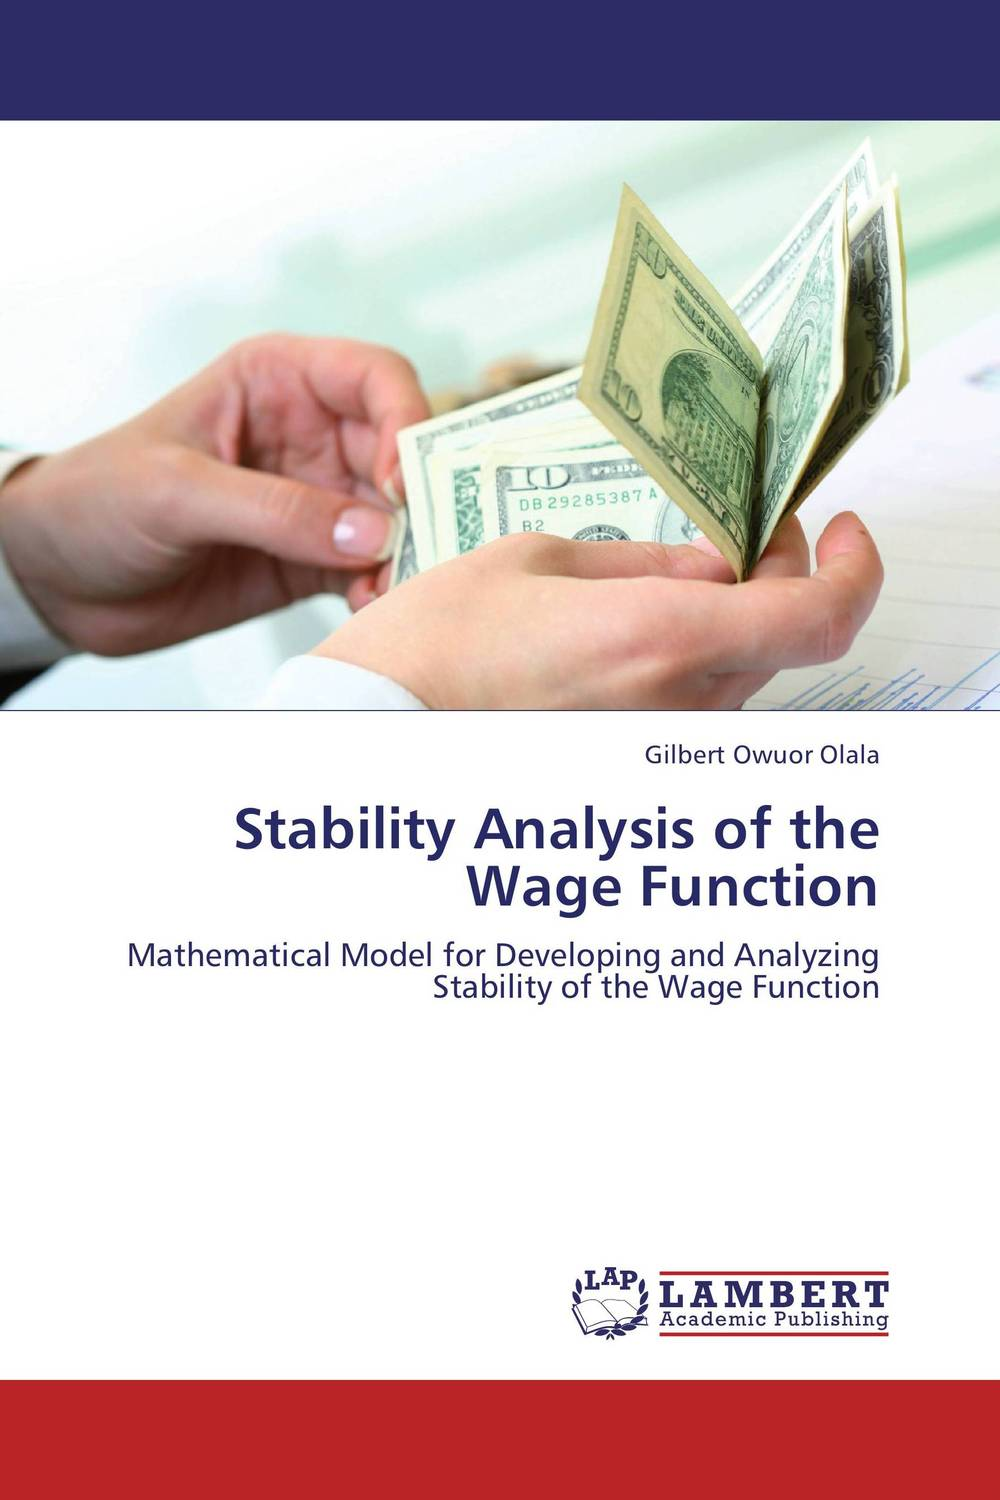 Stability Analysis of the Wage Function stem bromelain in silico analysis for stability and modification